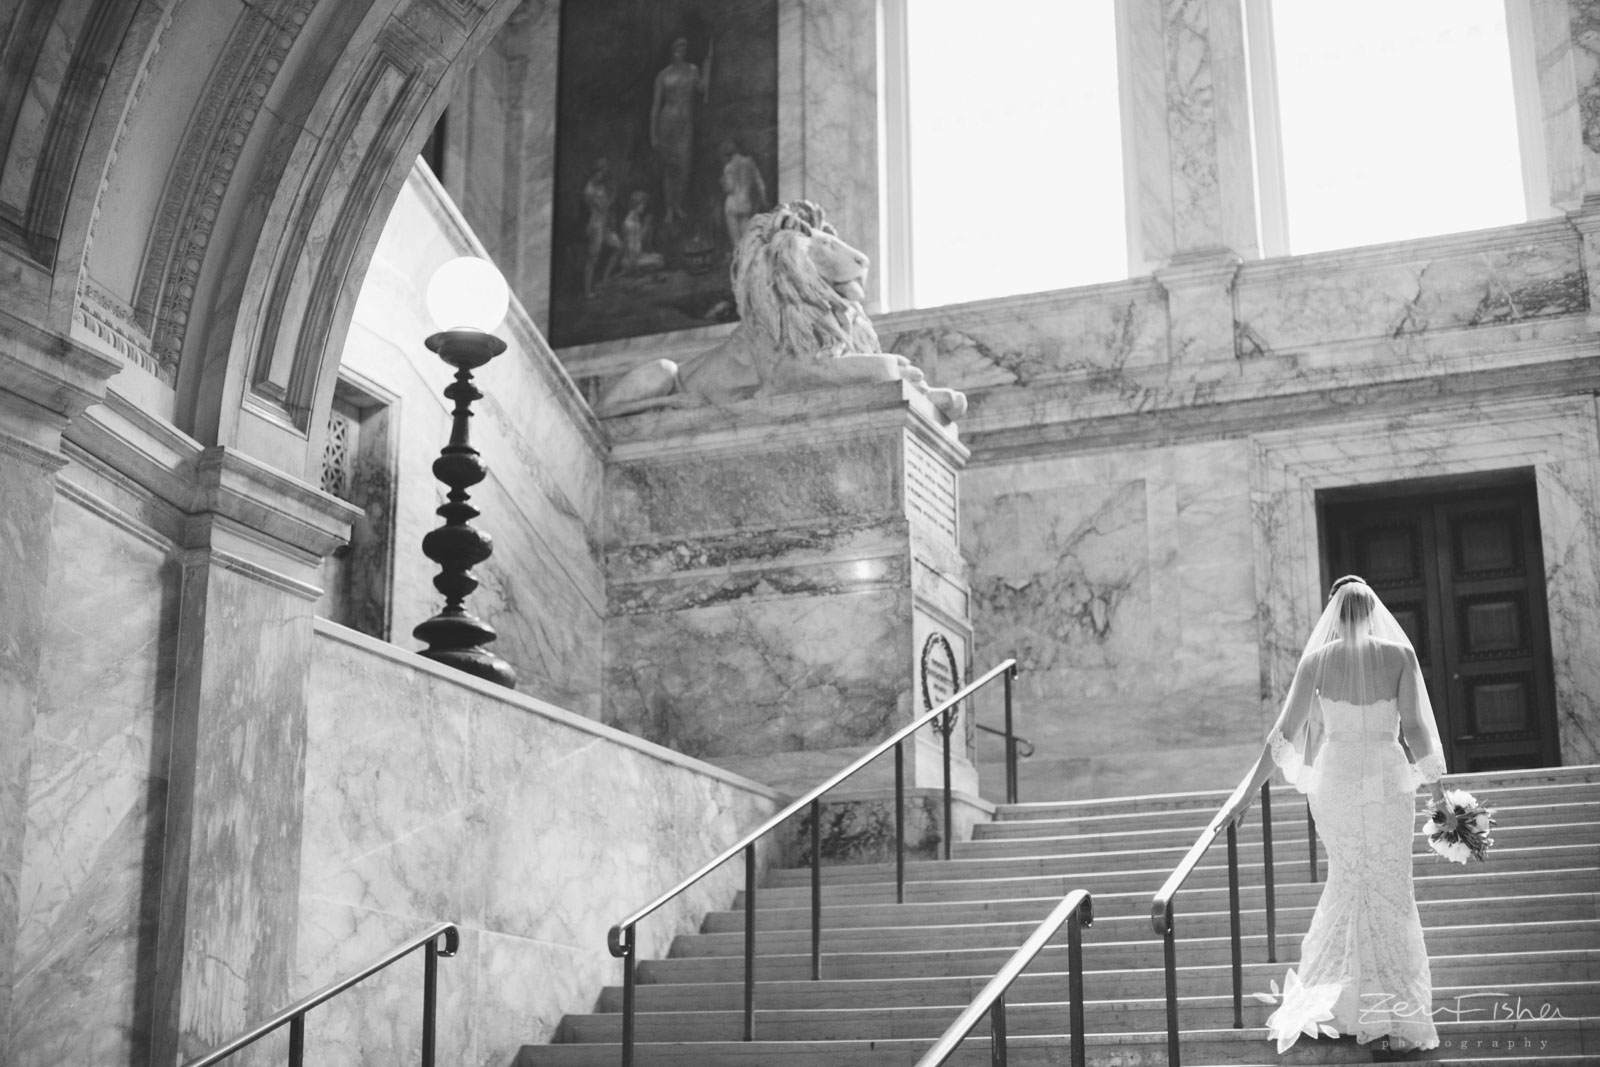 Bride from behind walking up the stairs at the elegant marble entrance to the Boston Public Library.